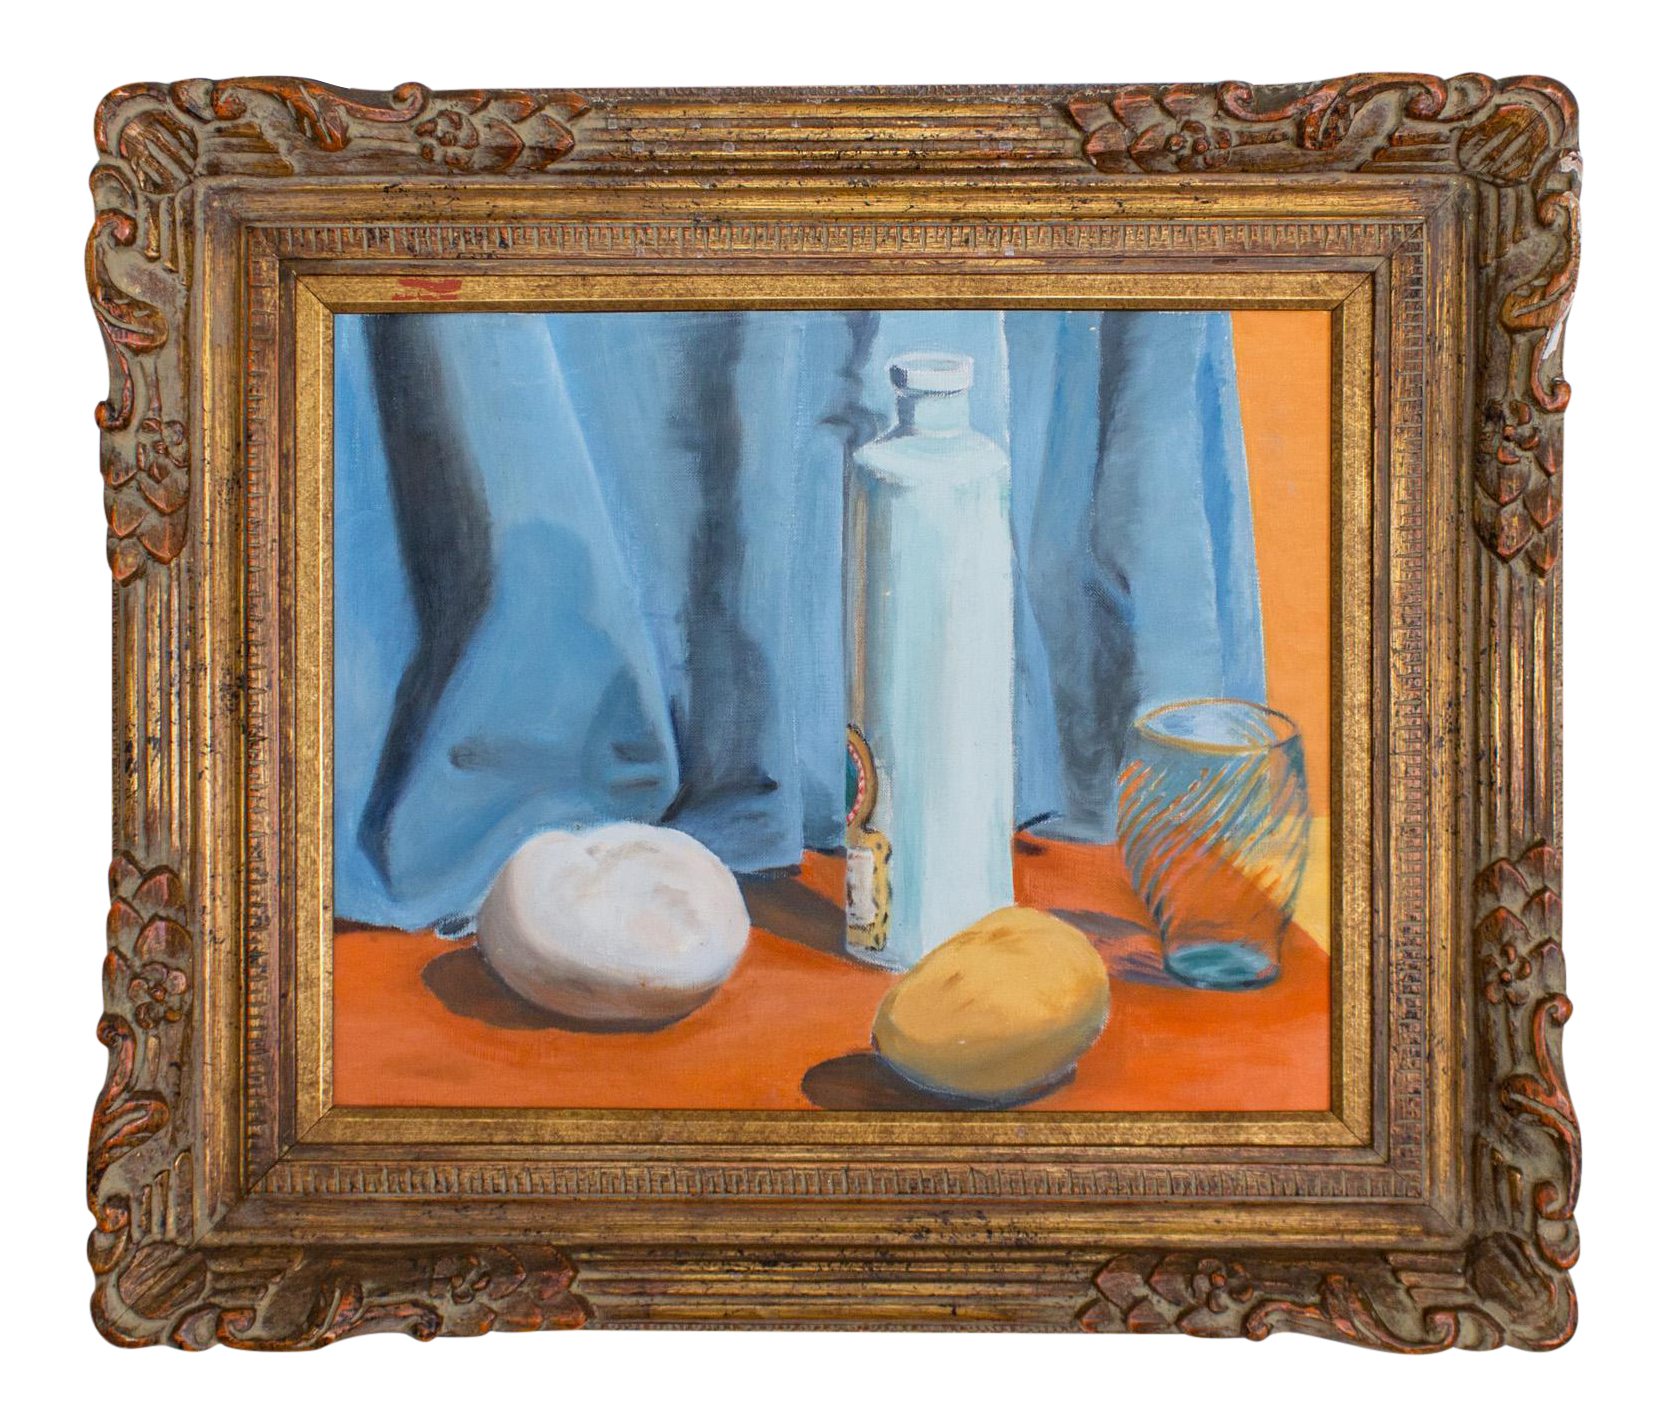 library Framed Still Life Pastel Drawing